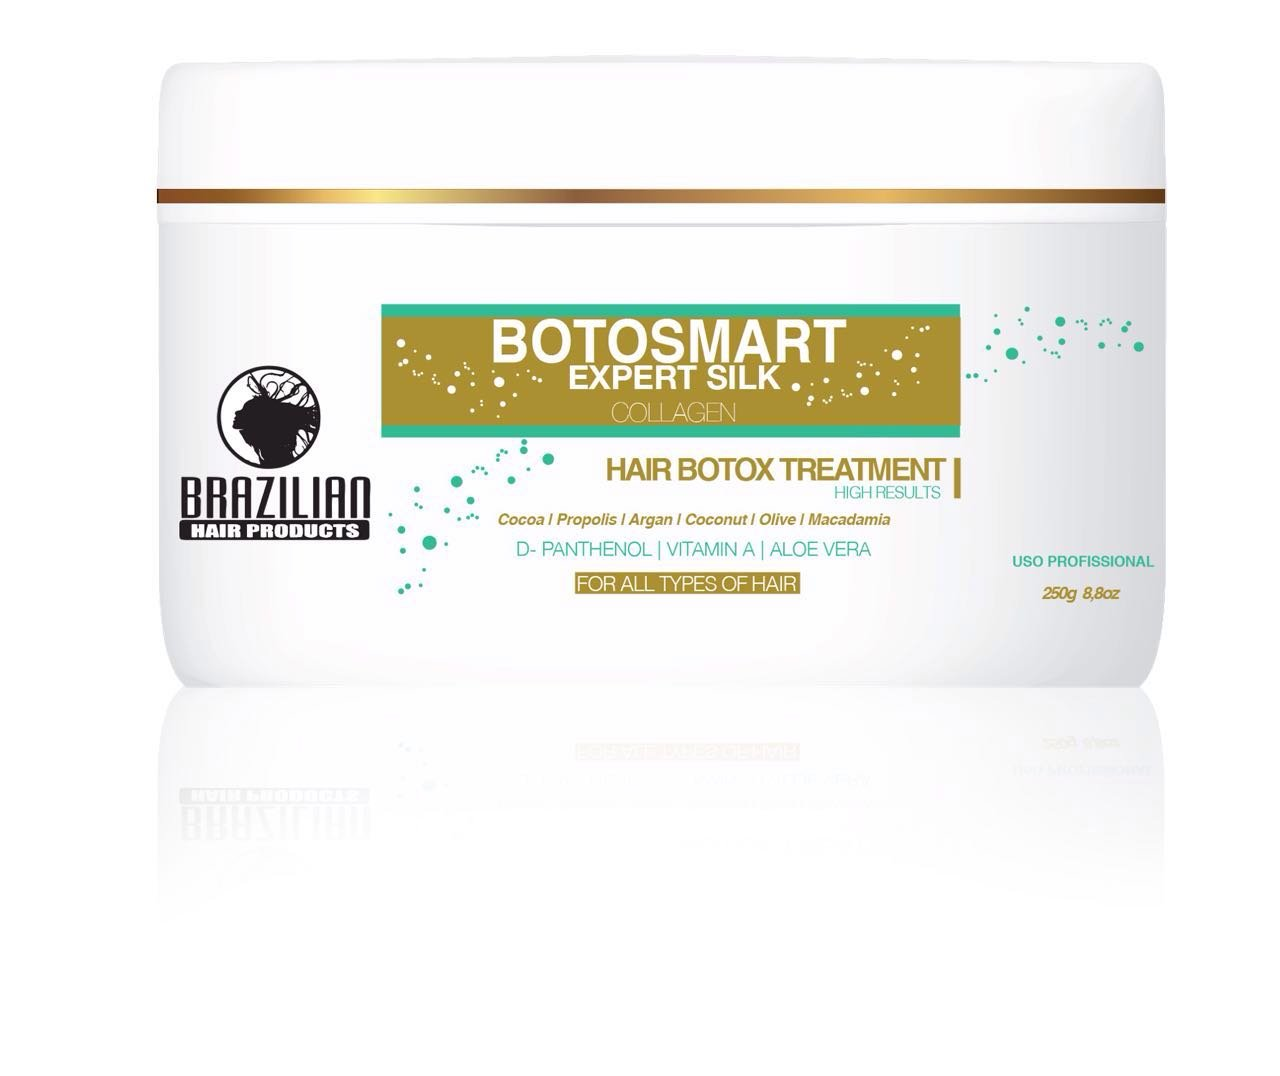 Brazilian BotoSmart Expert Silk Collagen Hair 250ml NEW brazilianhairproducts